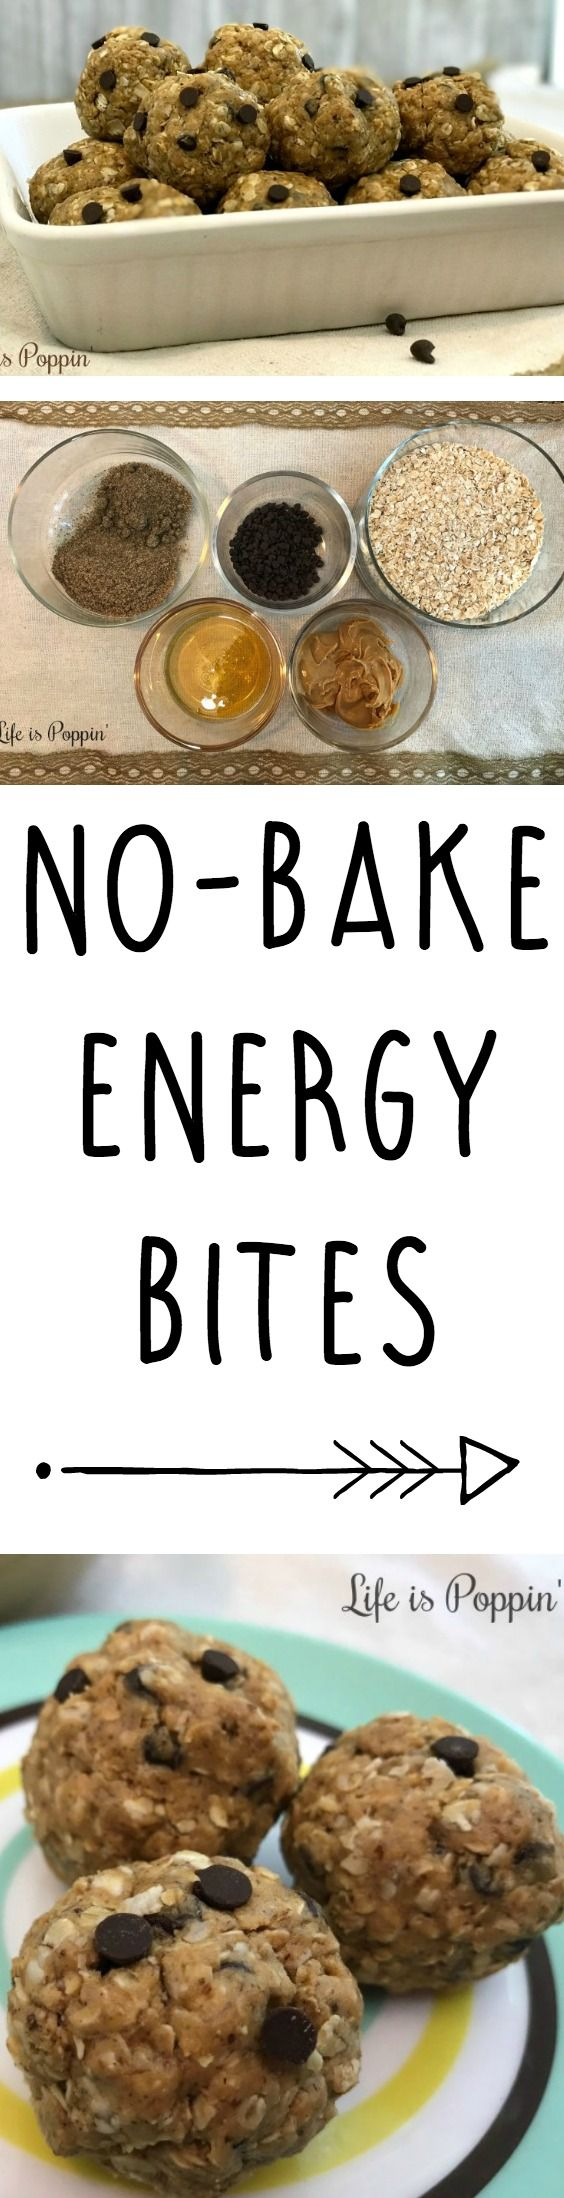 Three cheers for no-bake energy bites. #DunkinatGiantEagle #CollectiveBias #ad